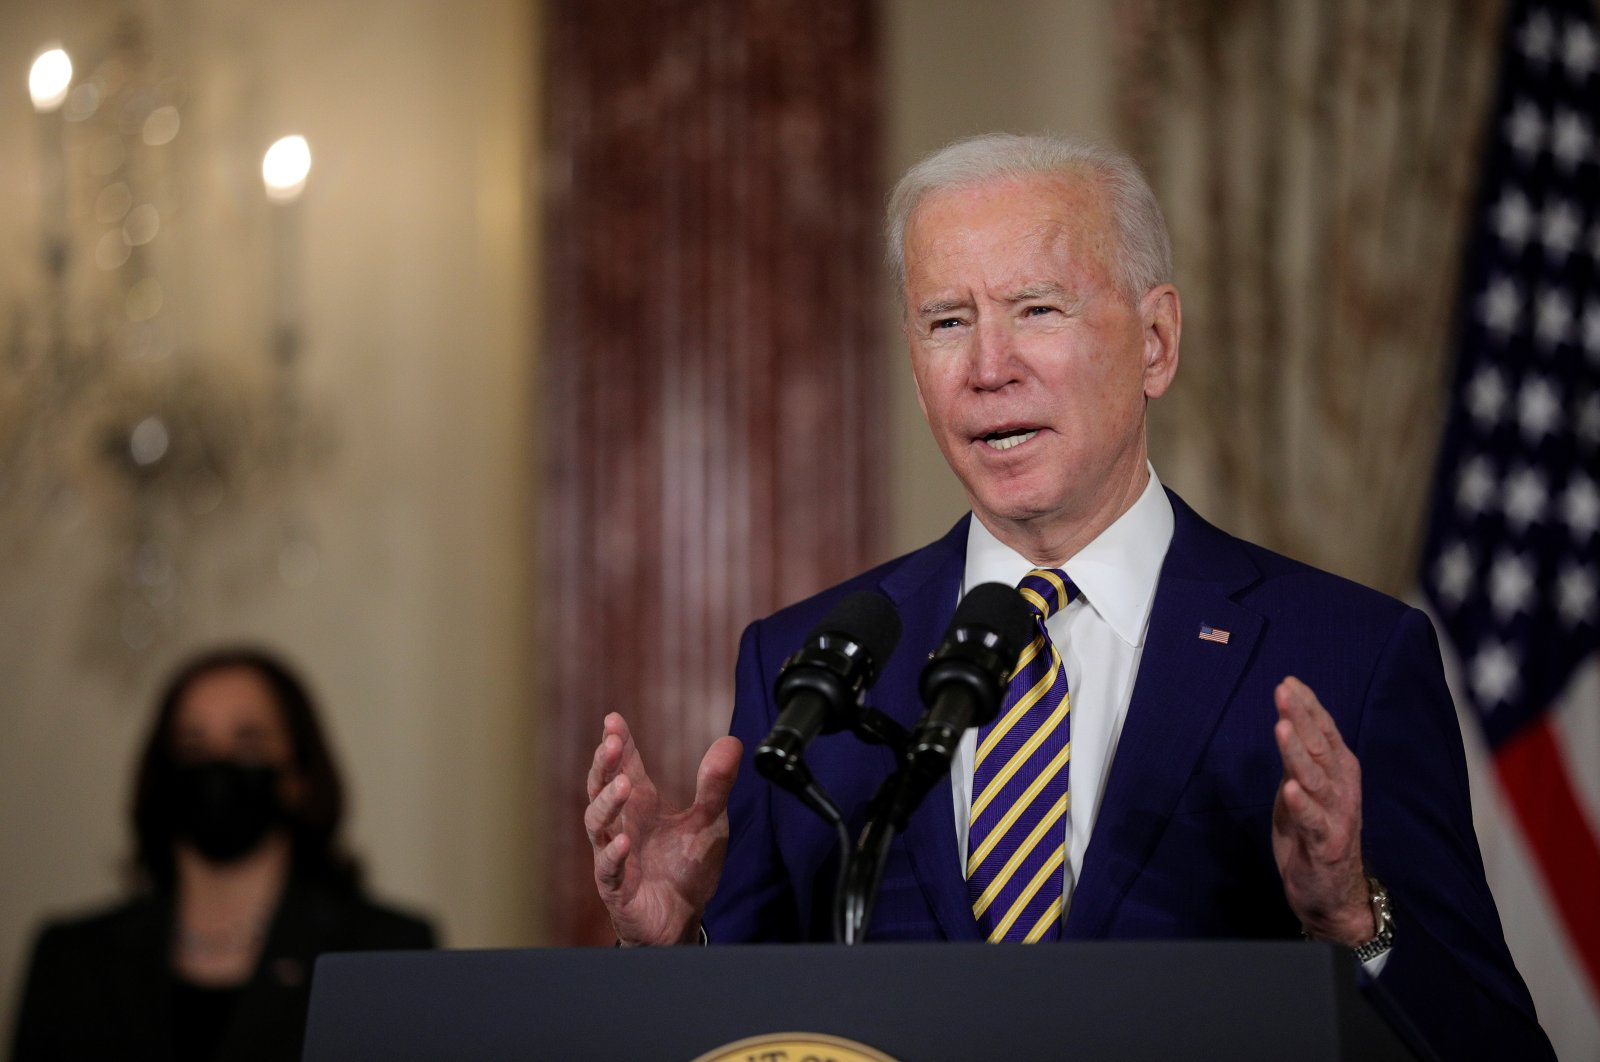 U.S. President Joe Biden delivers a foreign policy address as Vice President Kamala Harris listens during a visit to the State Department in Washington D.C., U.S., Feb. 4, 2021. (Reuters Photo)